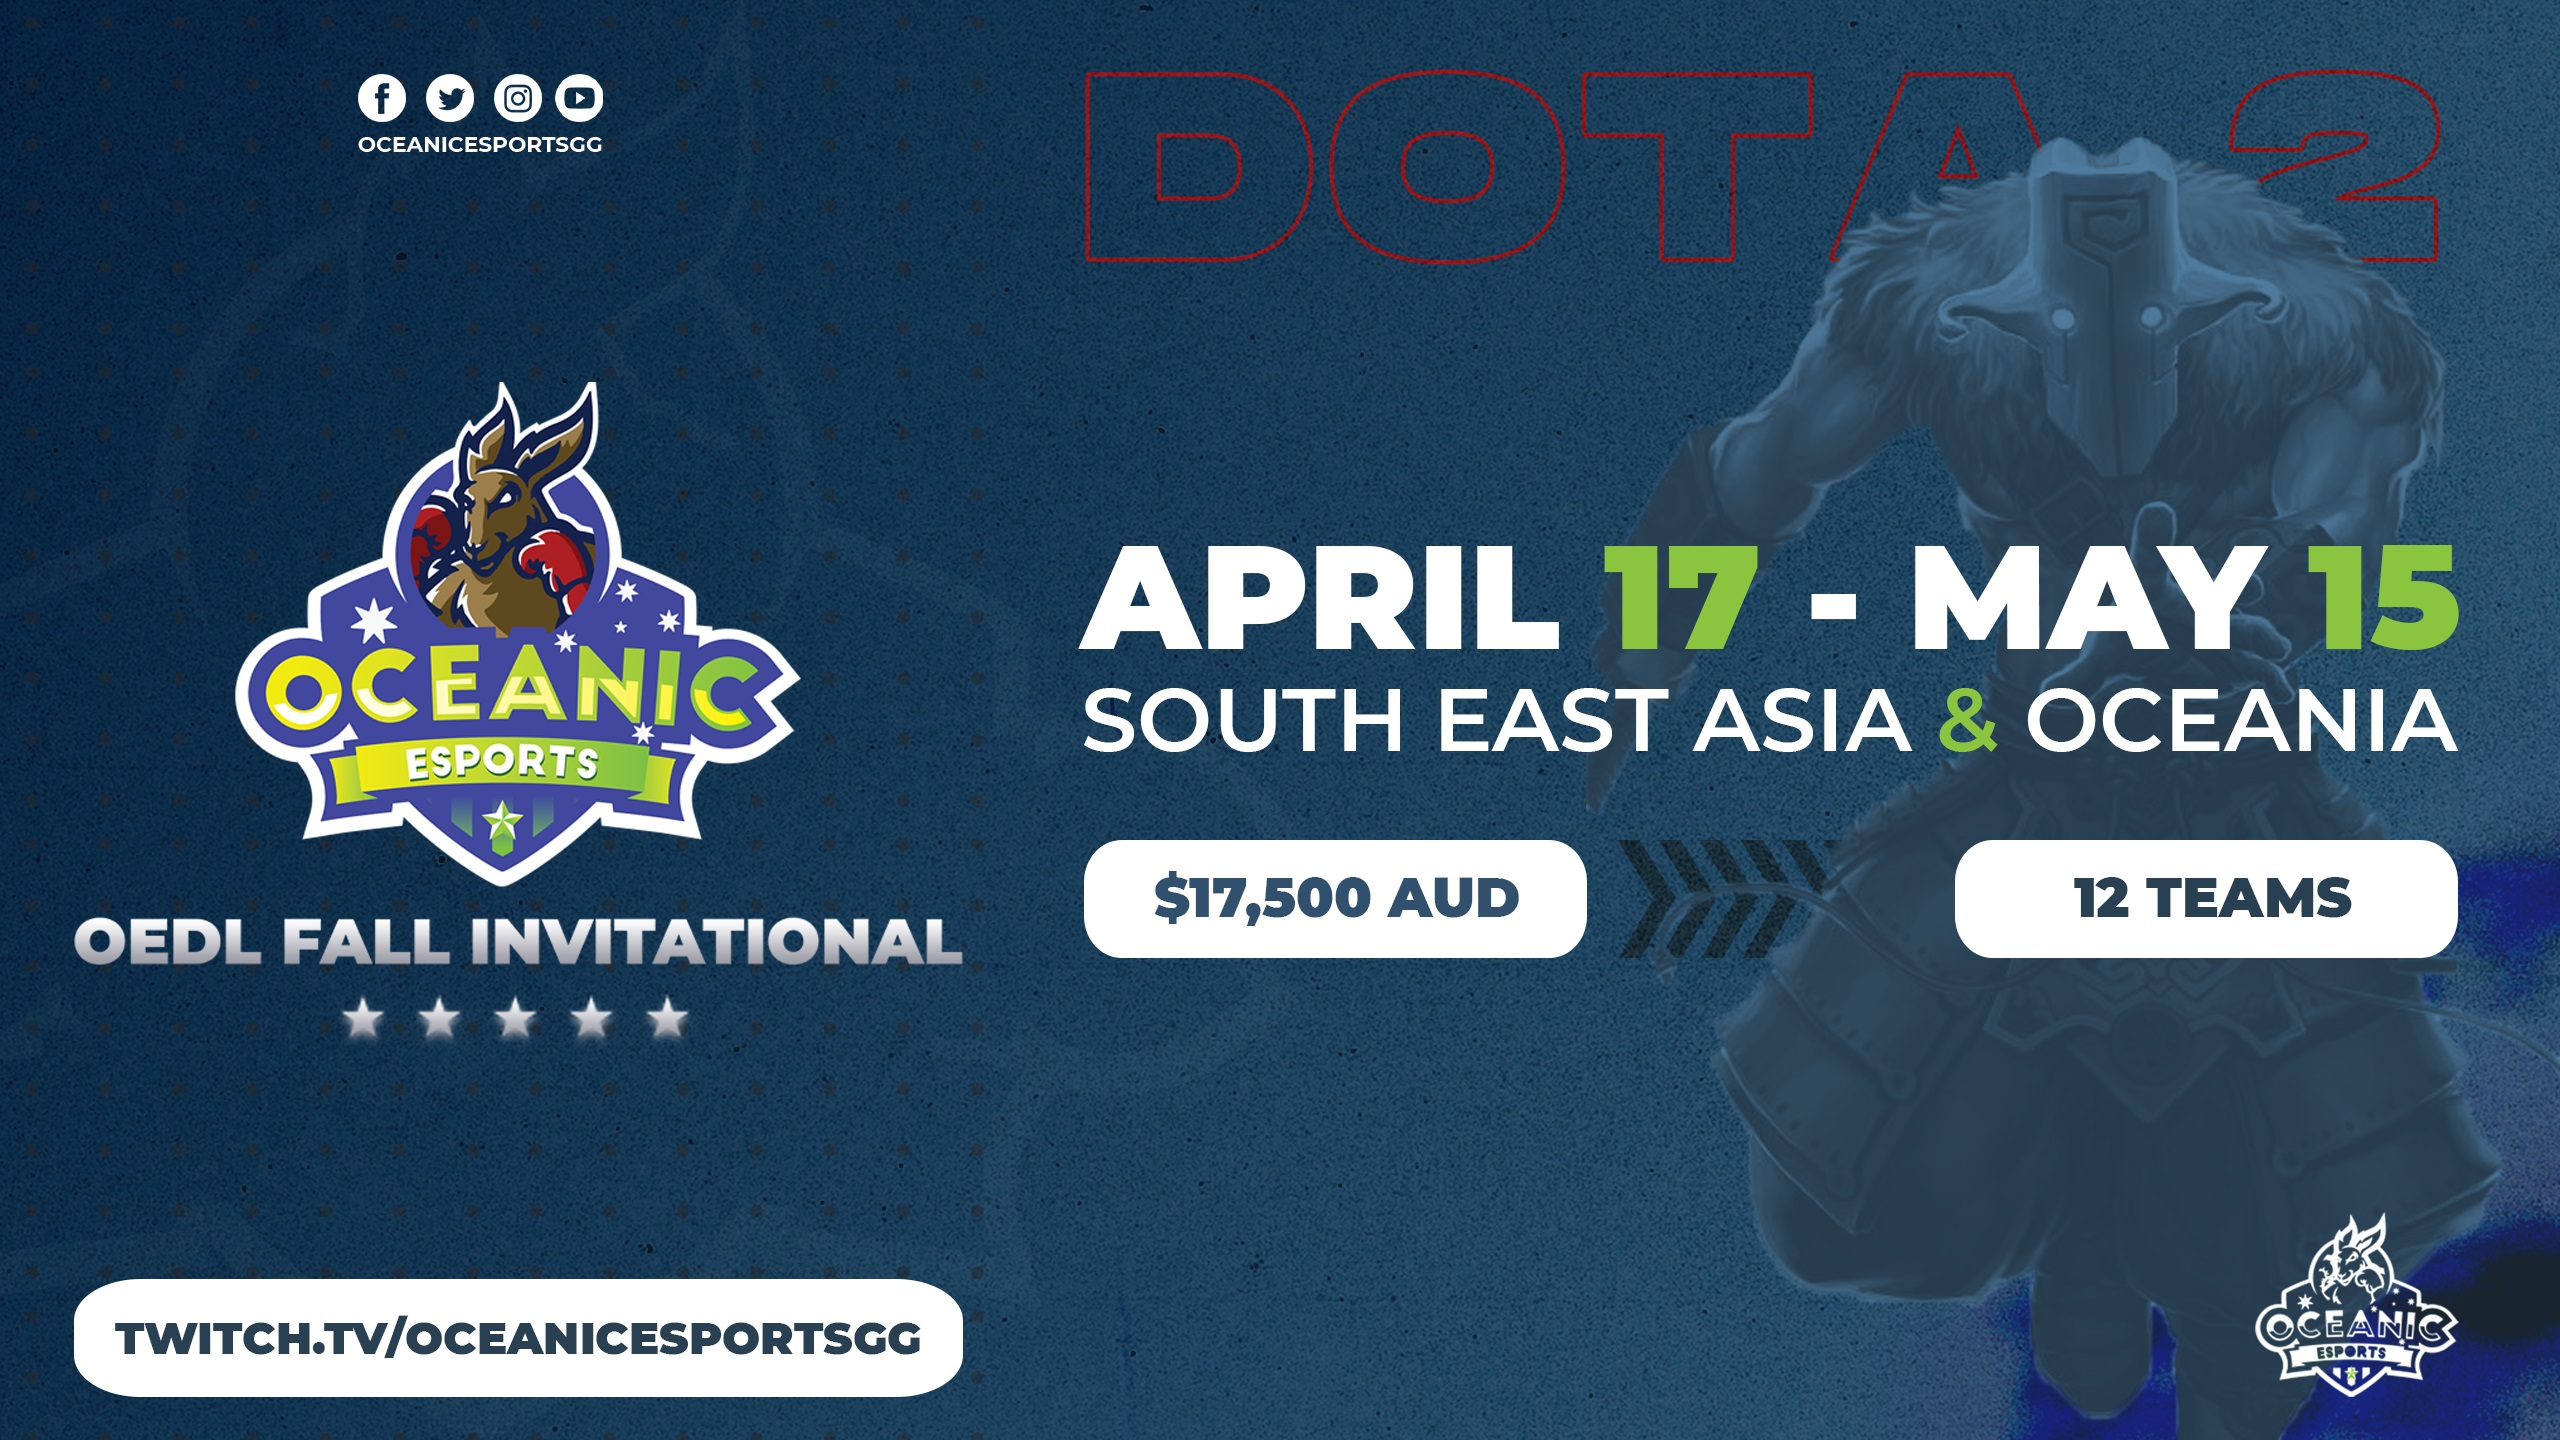 OEDL Fall Invitational Closed Qualifier Starts on April 19